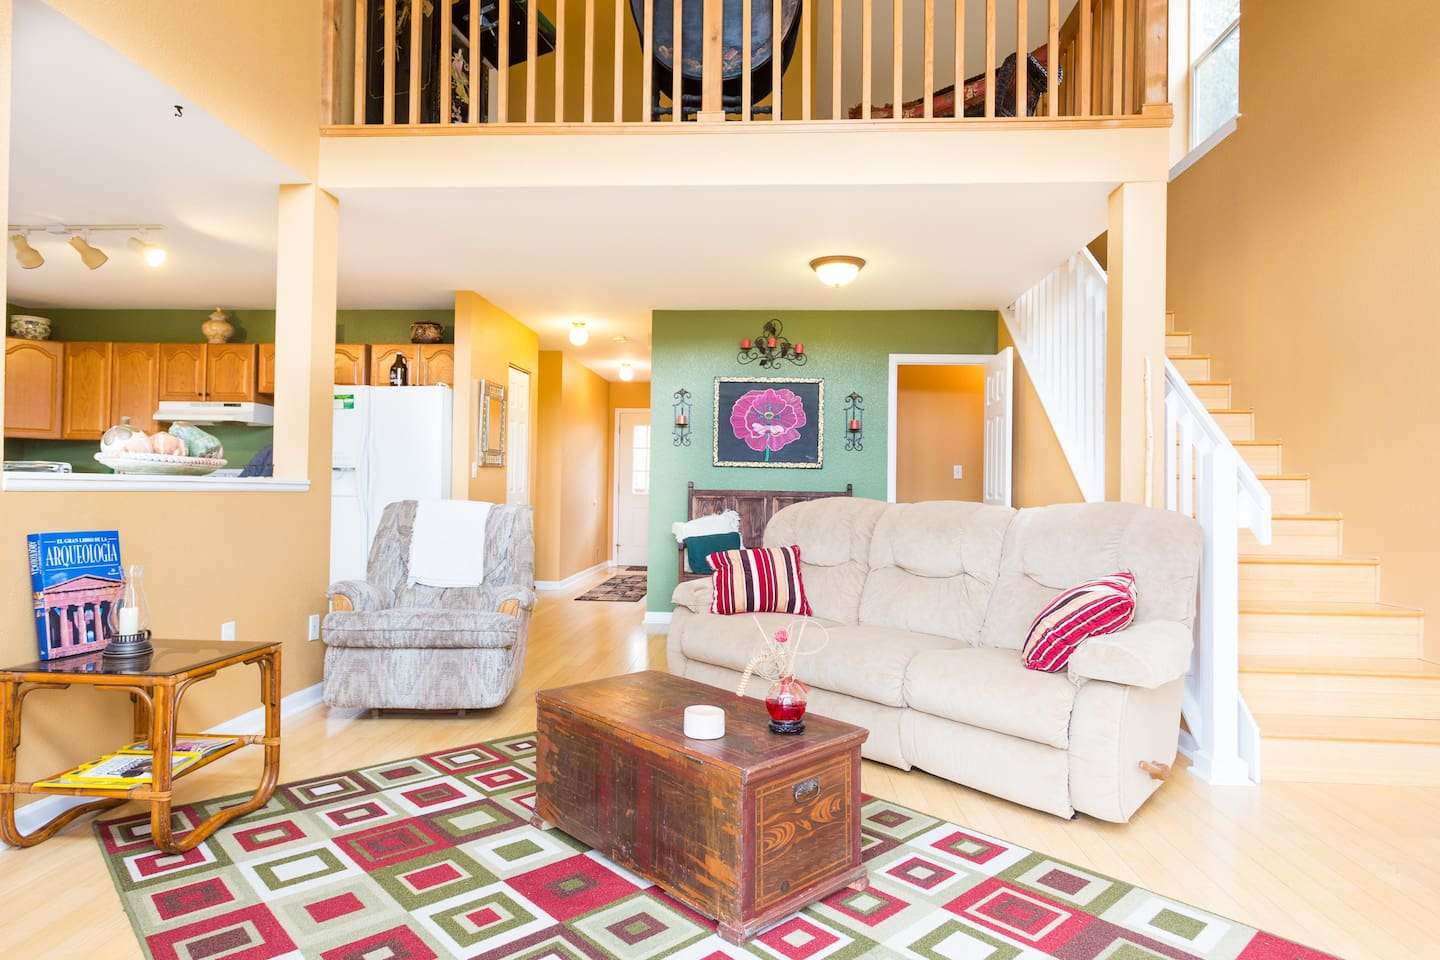 This is our main living room and what makes it special is the amazing view of the mountains.